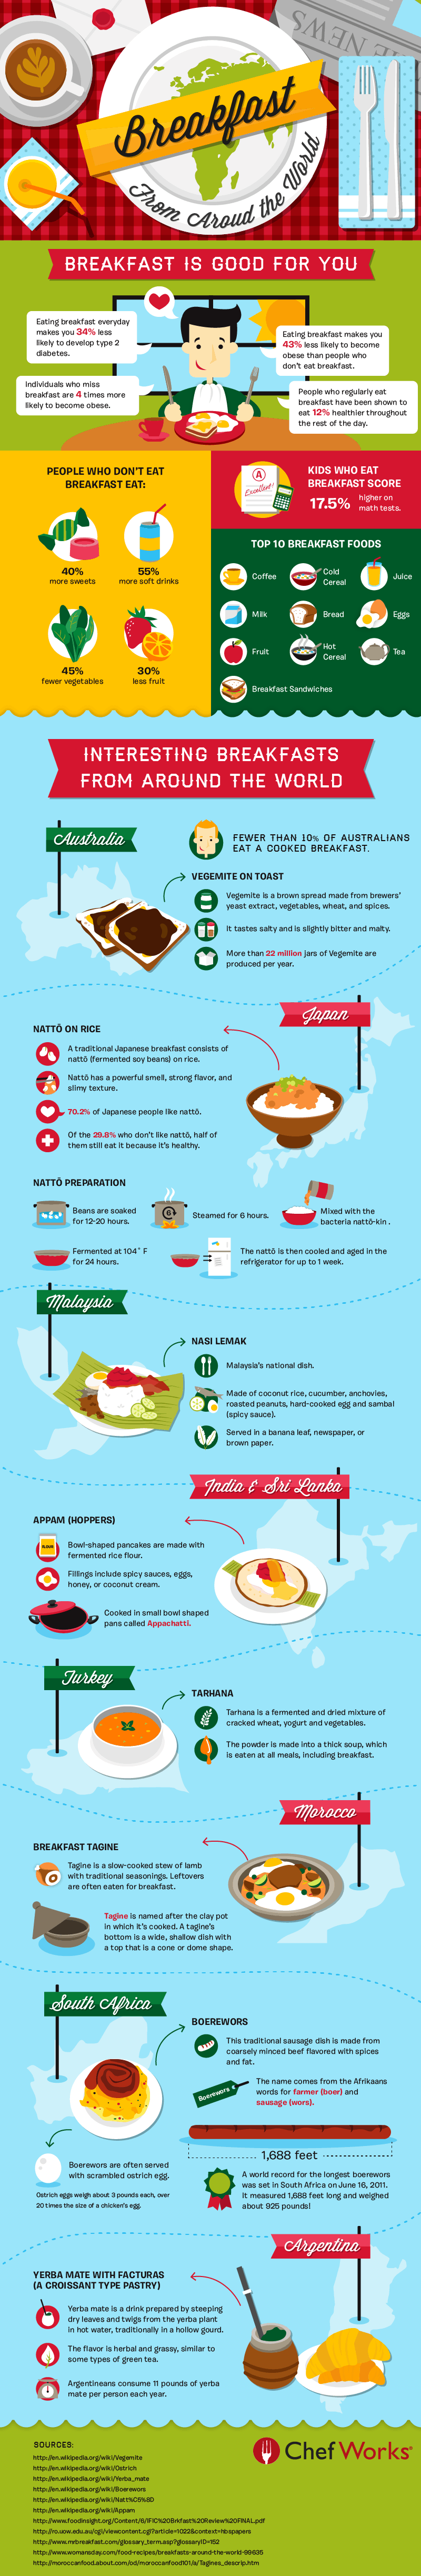 Infographic: Breakfast Trends Around the World